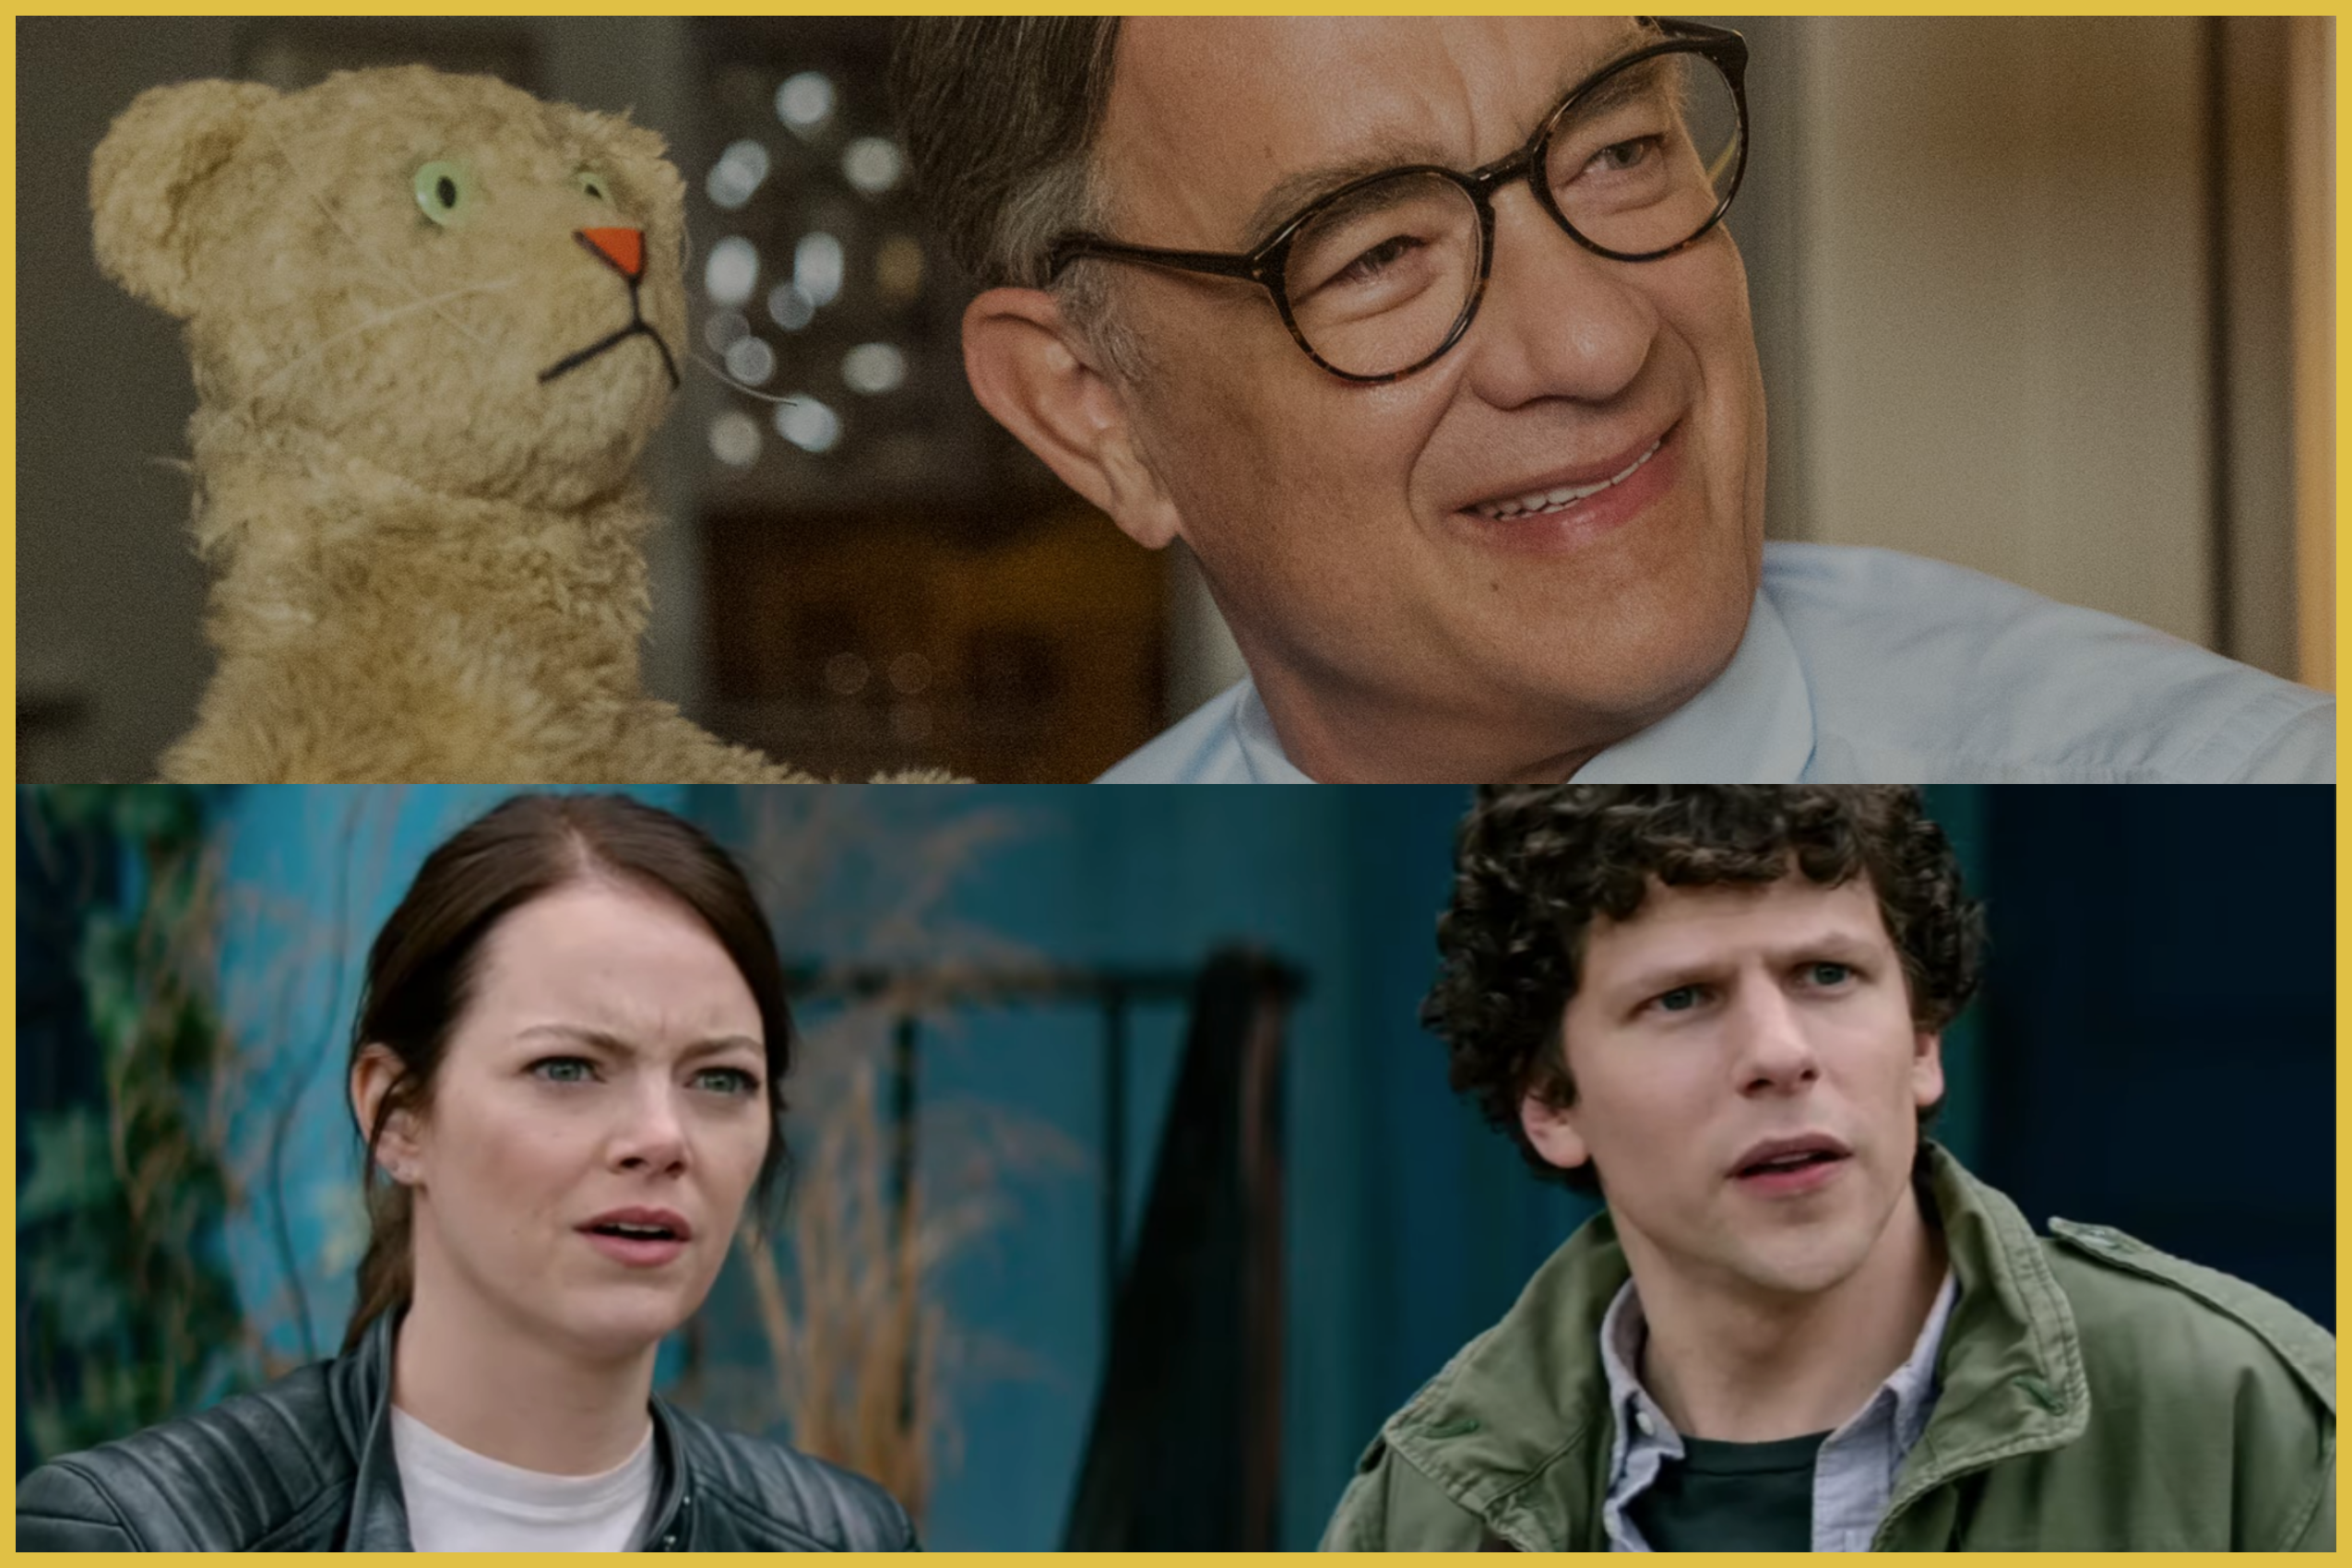 Andy at The Movies: Reviews, Trailers & Snarky Commentary